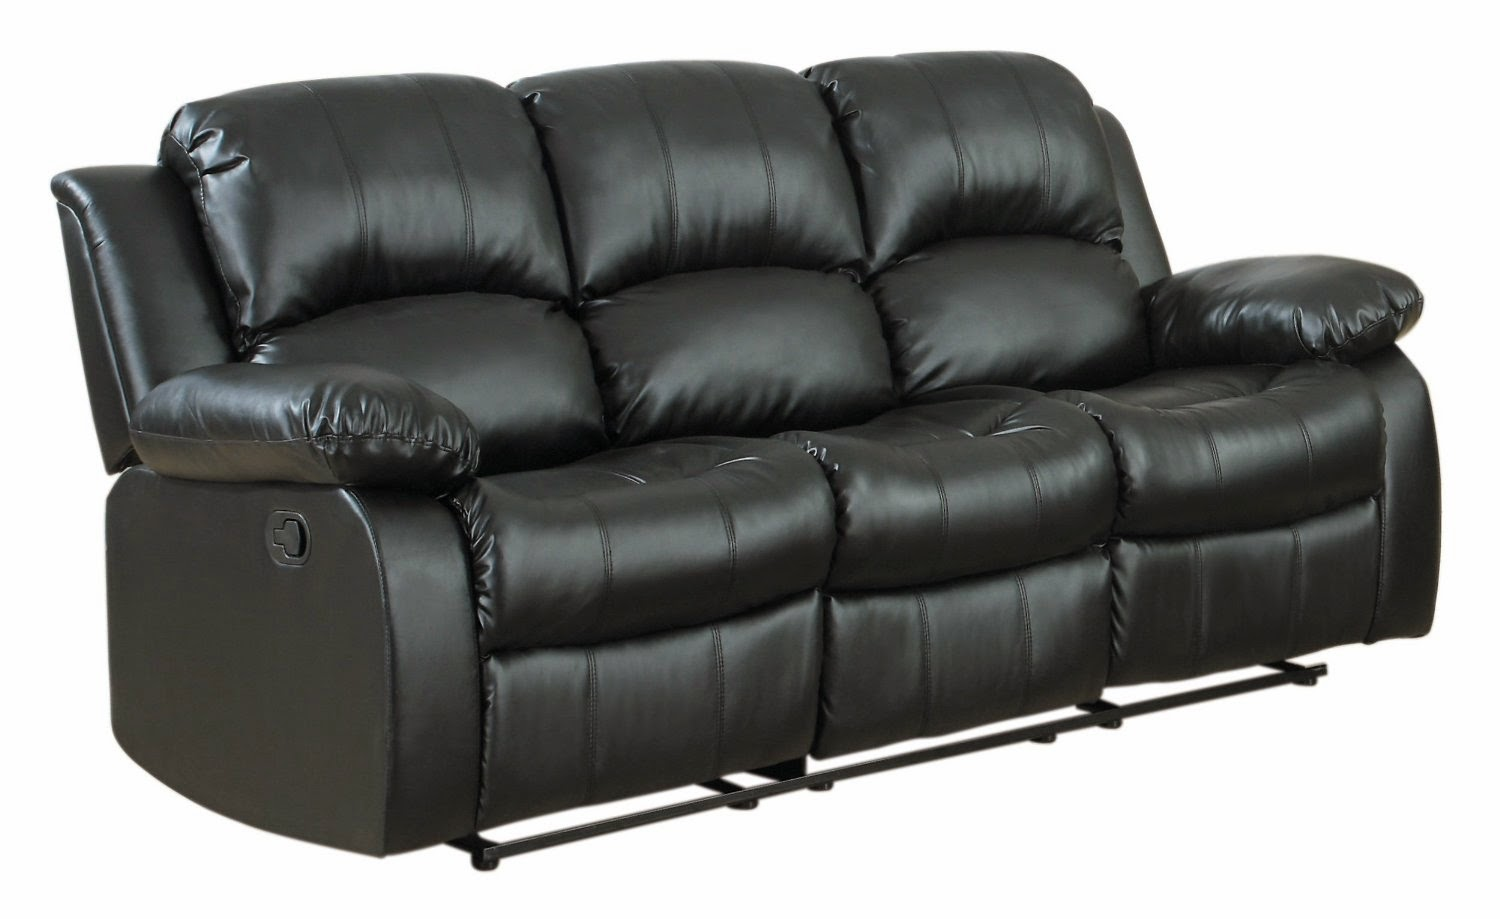 The Best Power Reclining Sofa Reviews Flexsteel Power Reclining